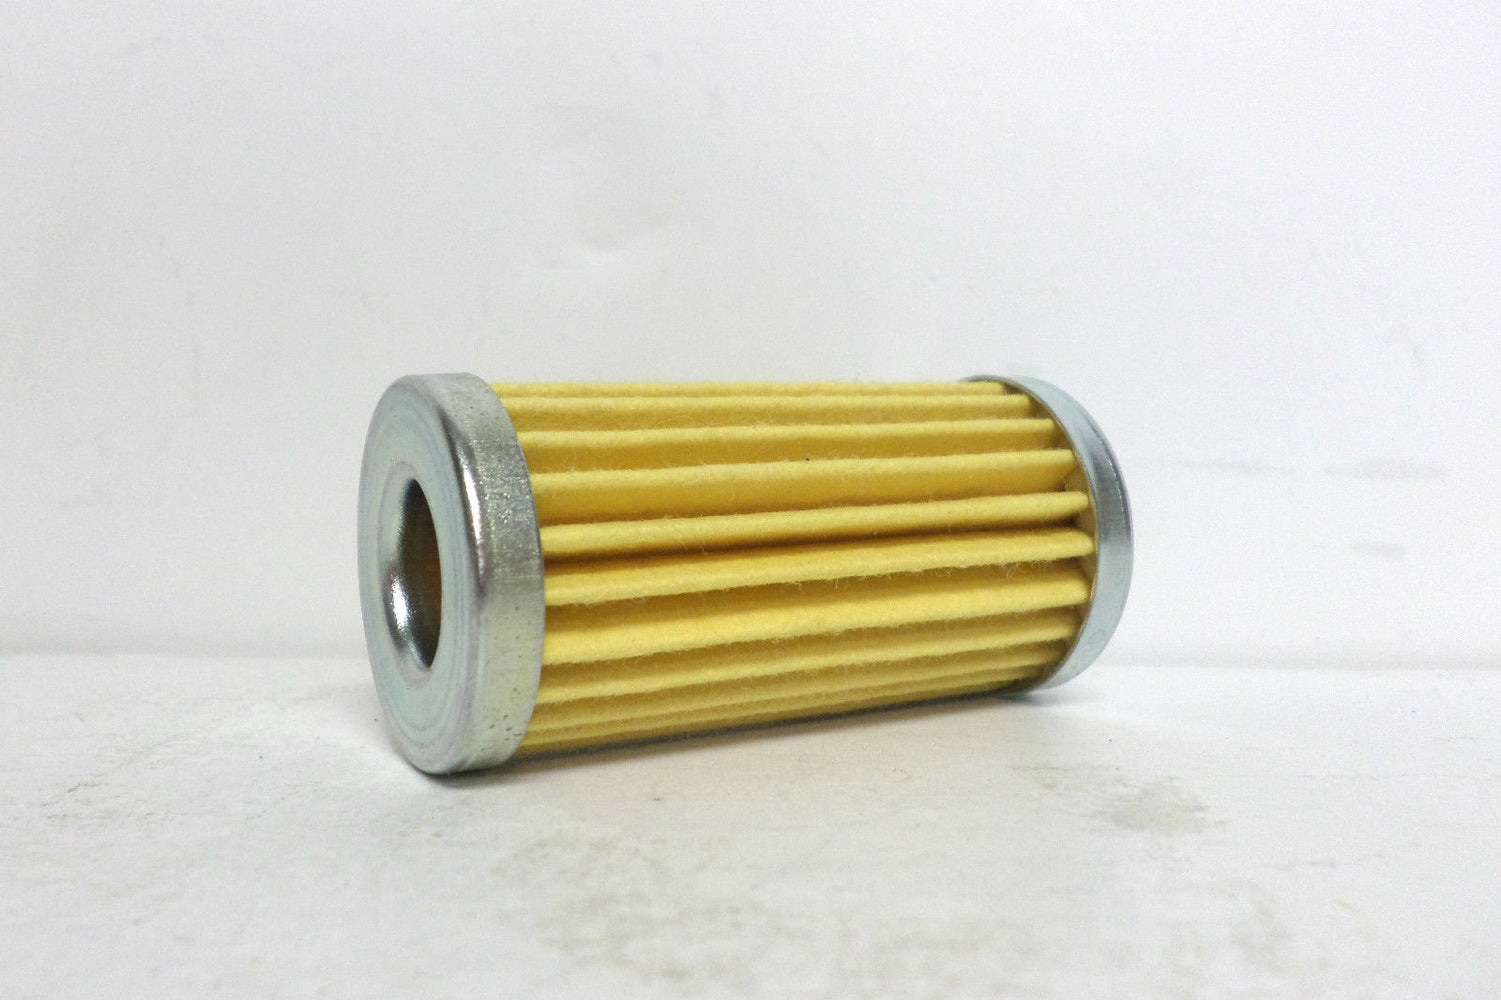 Mahindra OEM MM404879 FUEL Filter for 15/16 Series